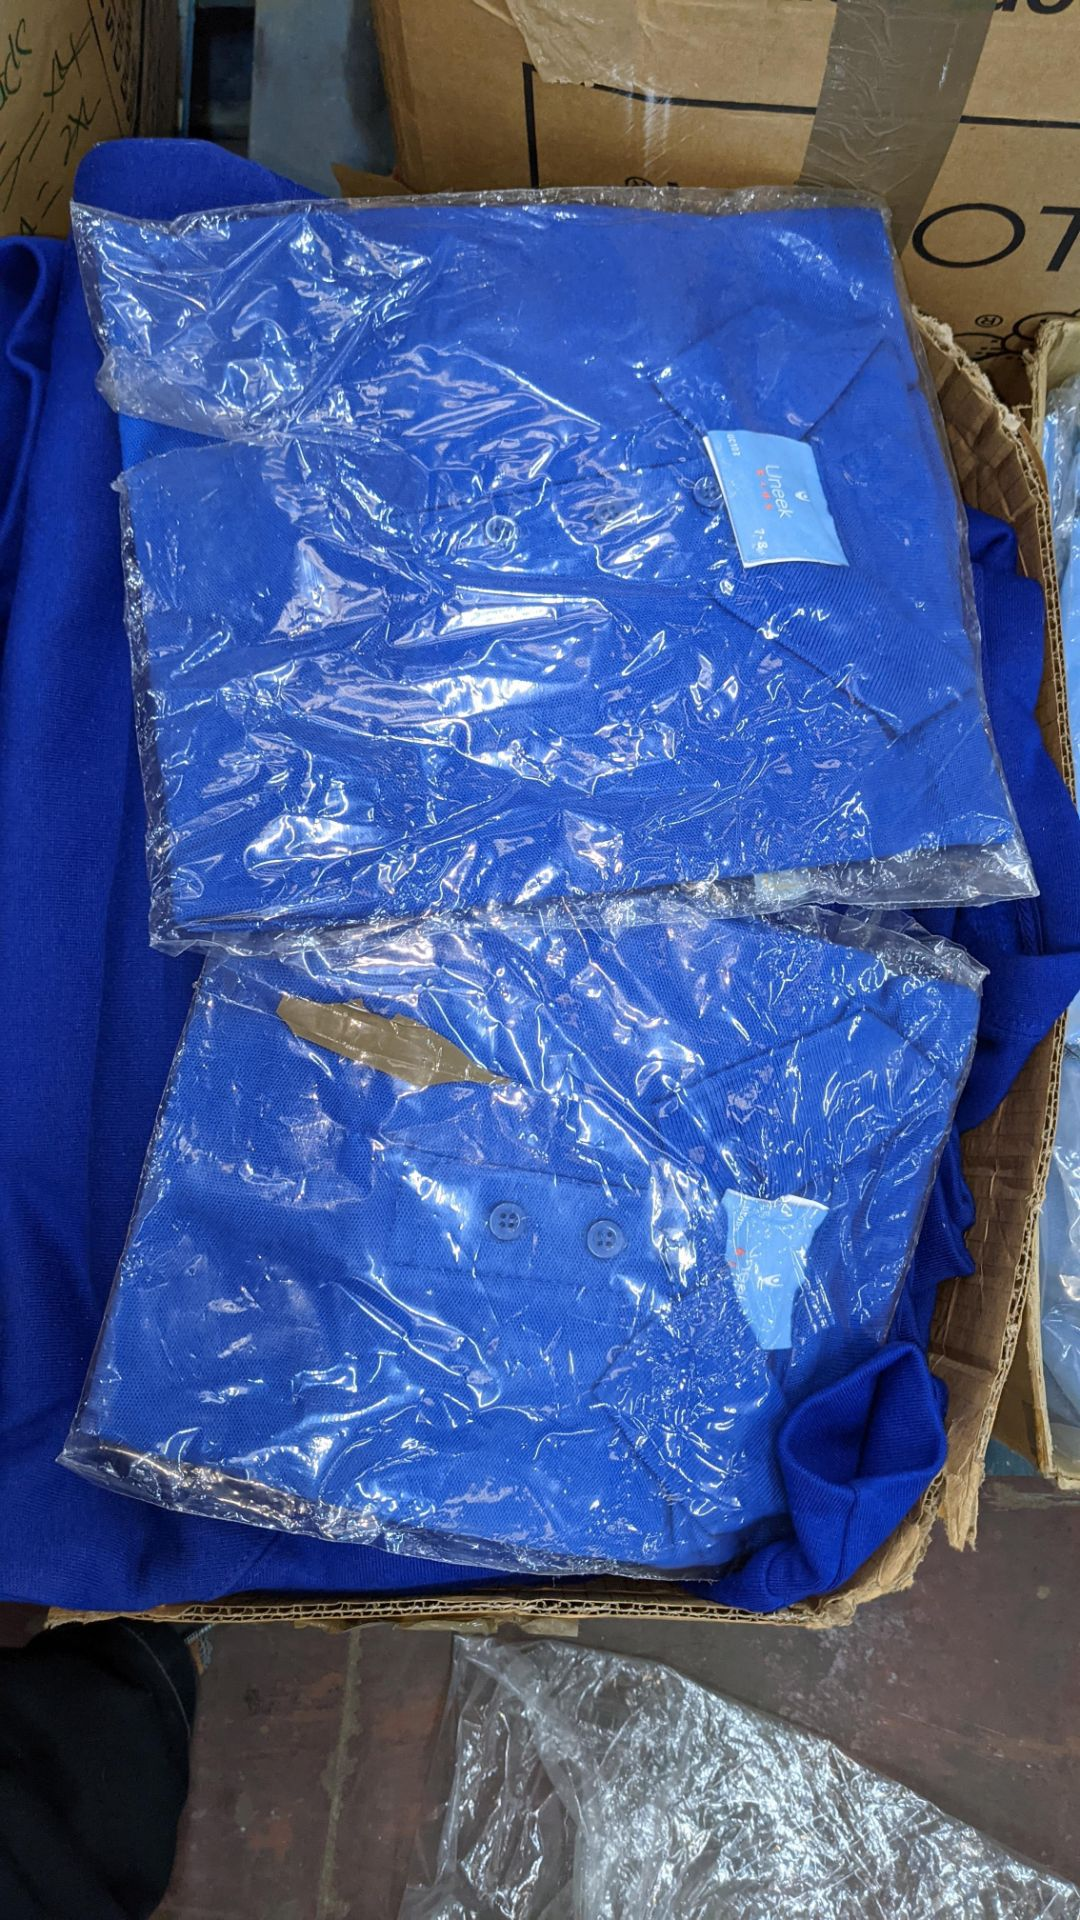 Approx 24 off mixed children's t-shirts, jumpers & cardigans - Image 3 of 5